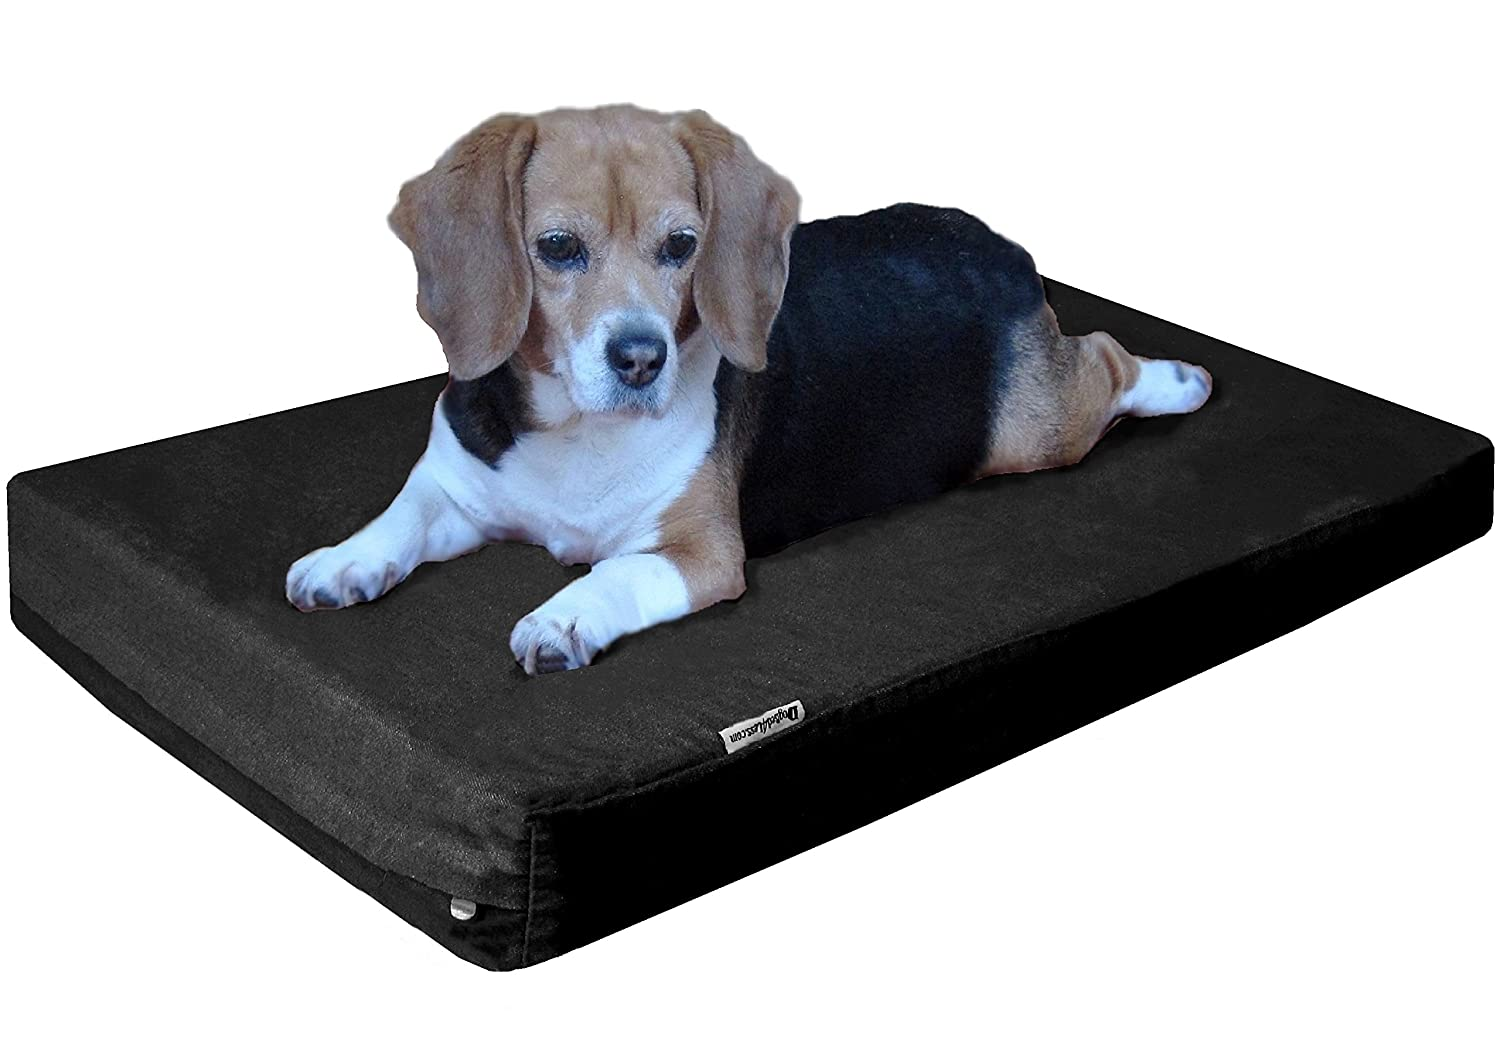 Dogbed4less Premium Orthopedic Cooling Memory Foam Dog Bed Small, Medium to XL Pet, Waterproof Liner Durable Canvas Cover Extra External Case